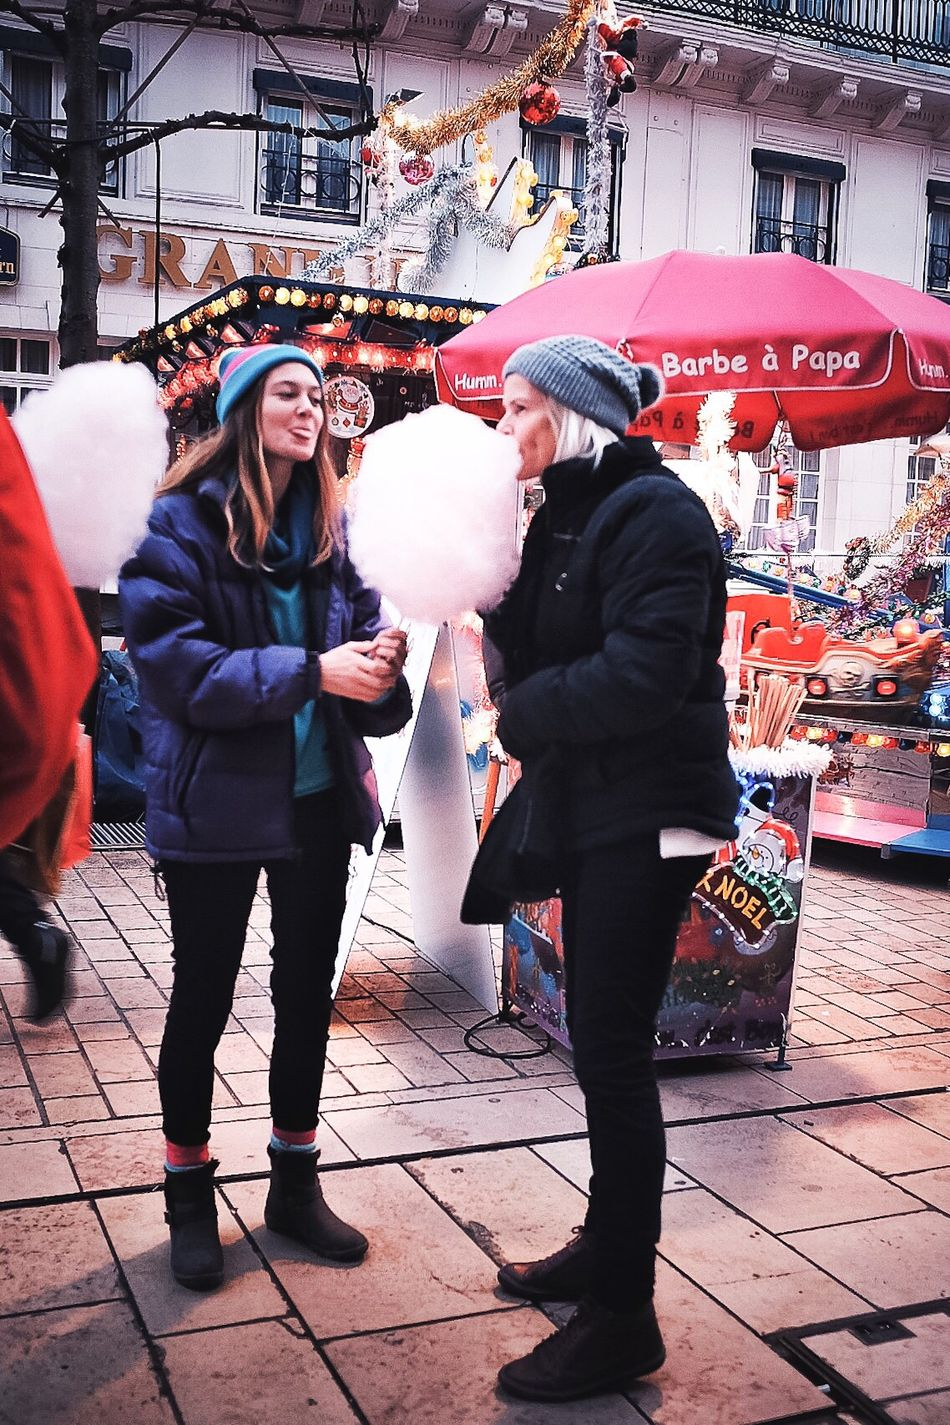 Street People Real People Togetherness City Holiday - Event Family Candyfloss Christmas Christmas Market Christmas Decoration Candid Photography Street Photo Streetphotography Streetphoto Street Photography Amiens Christmas Lights Christmas Fun